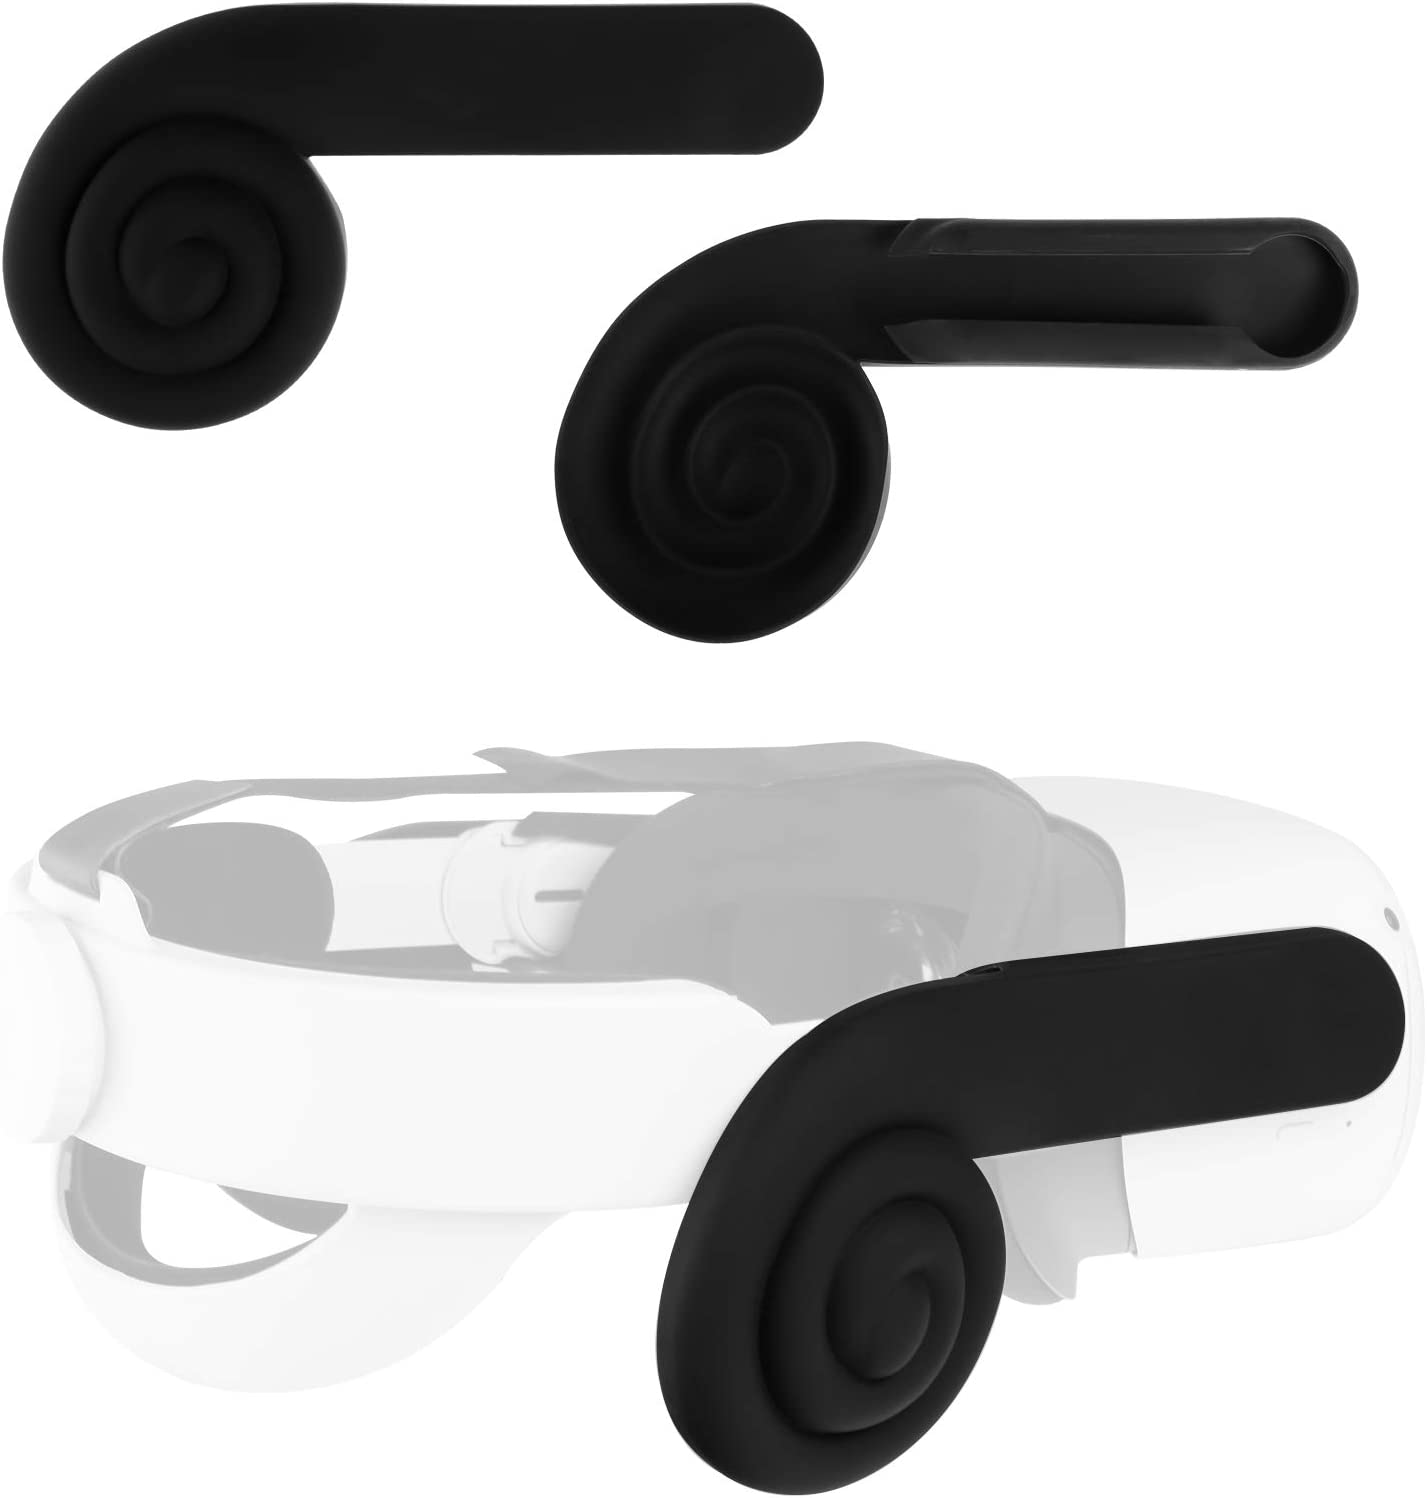 (1 Pair) Seltureone Compatible for Oculus Quest 2 VR Headset Silicone Ear Muffs, Enhancing Sound Ear Cups Accessories for Quest 2 Headphones, Black